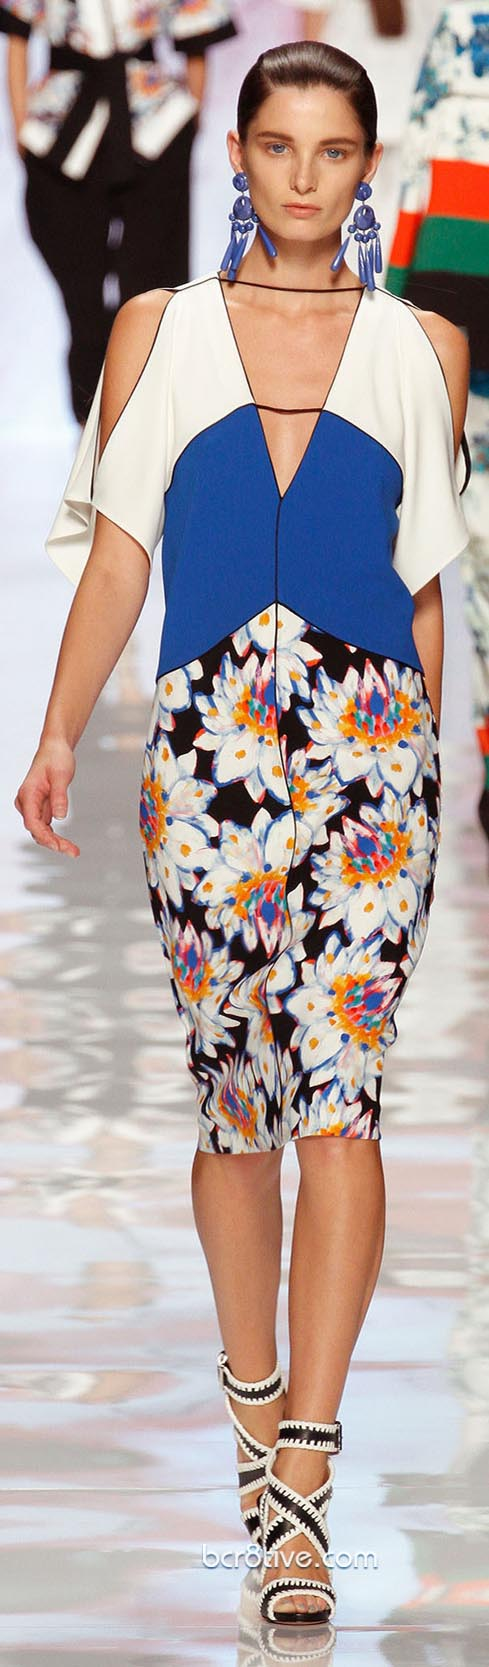 ETRO Spring Summer 2013 Ready To Wear collection